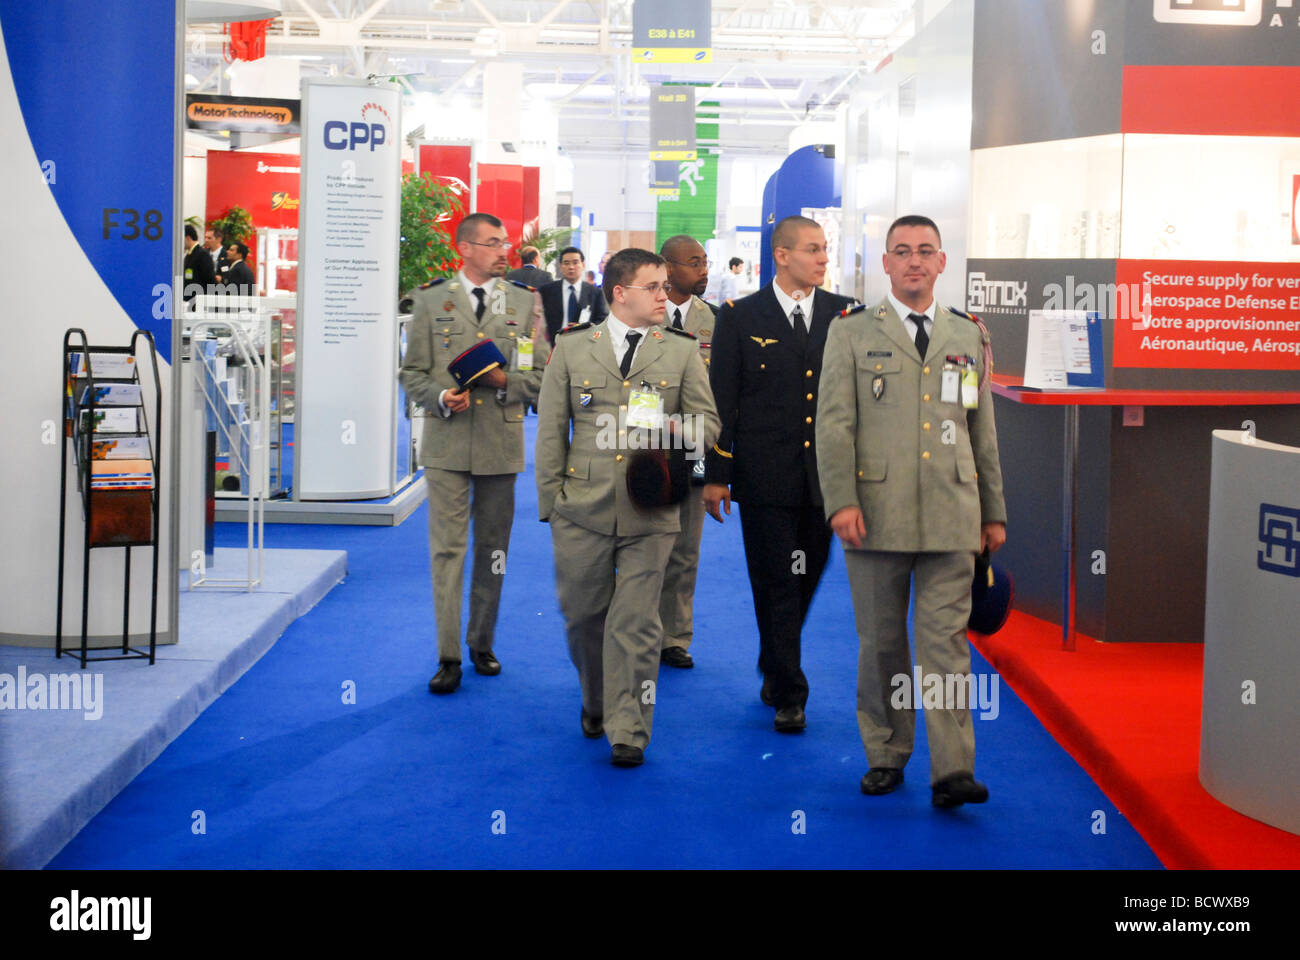 France Paris Bourget Airport Salon du Bourget The le Bourget Air show 2009 French Military delegates visiting the - Stock Image